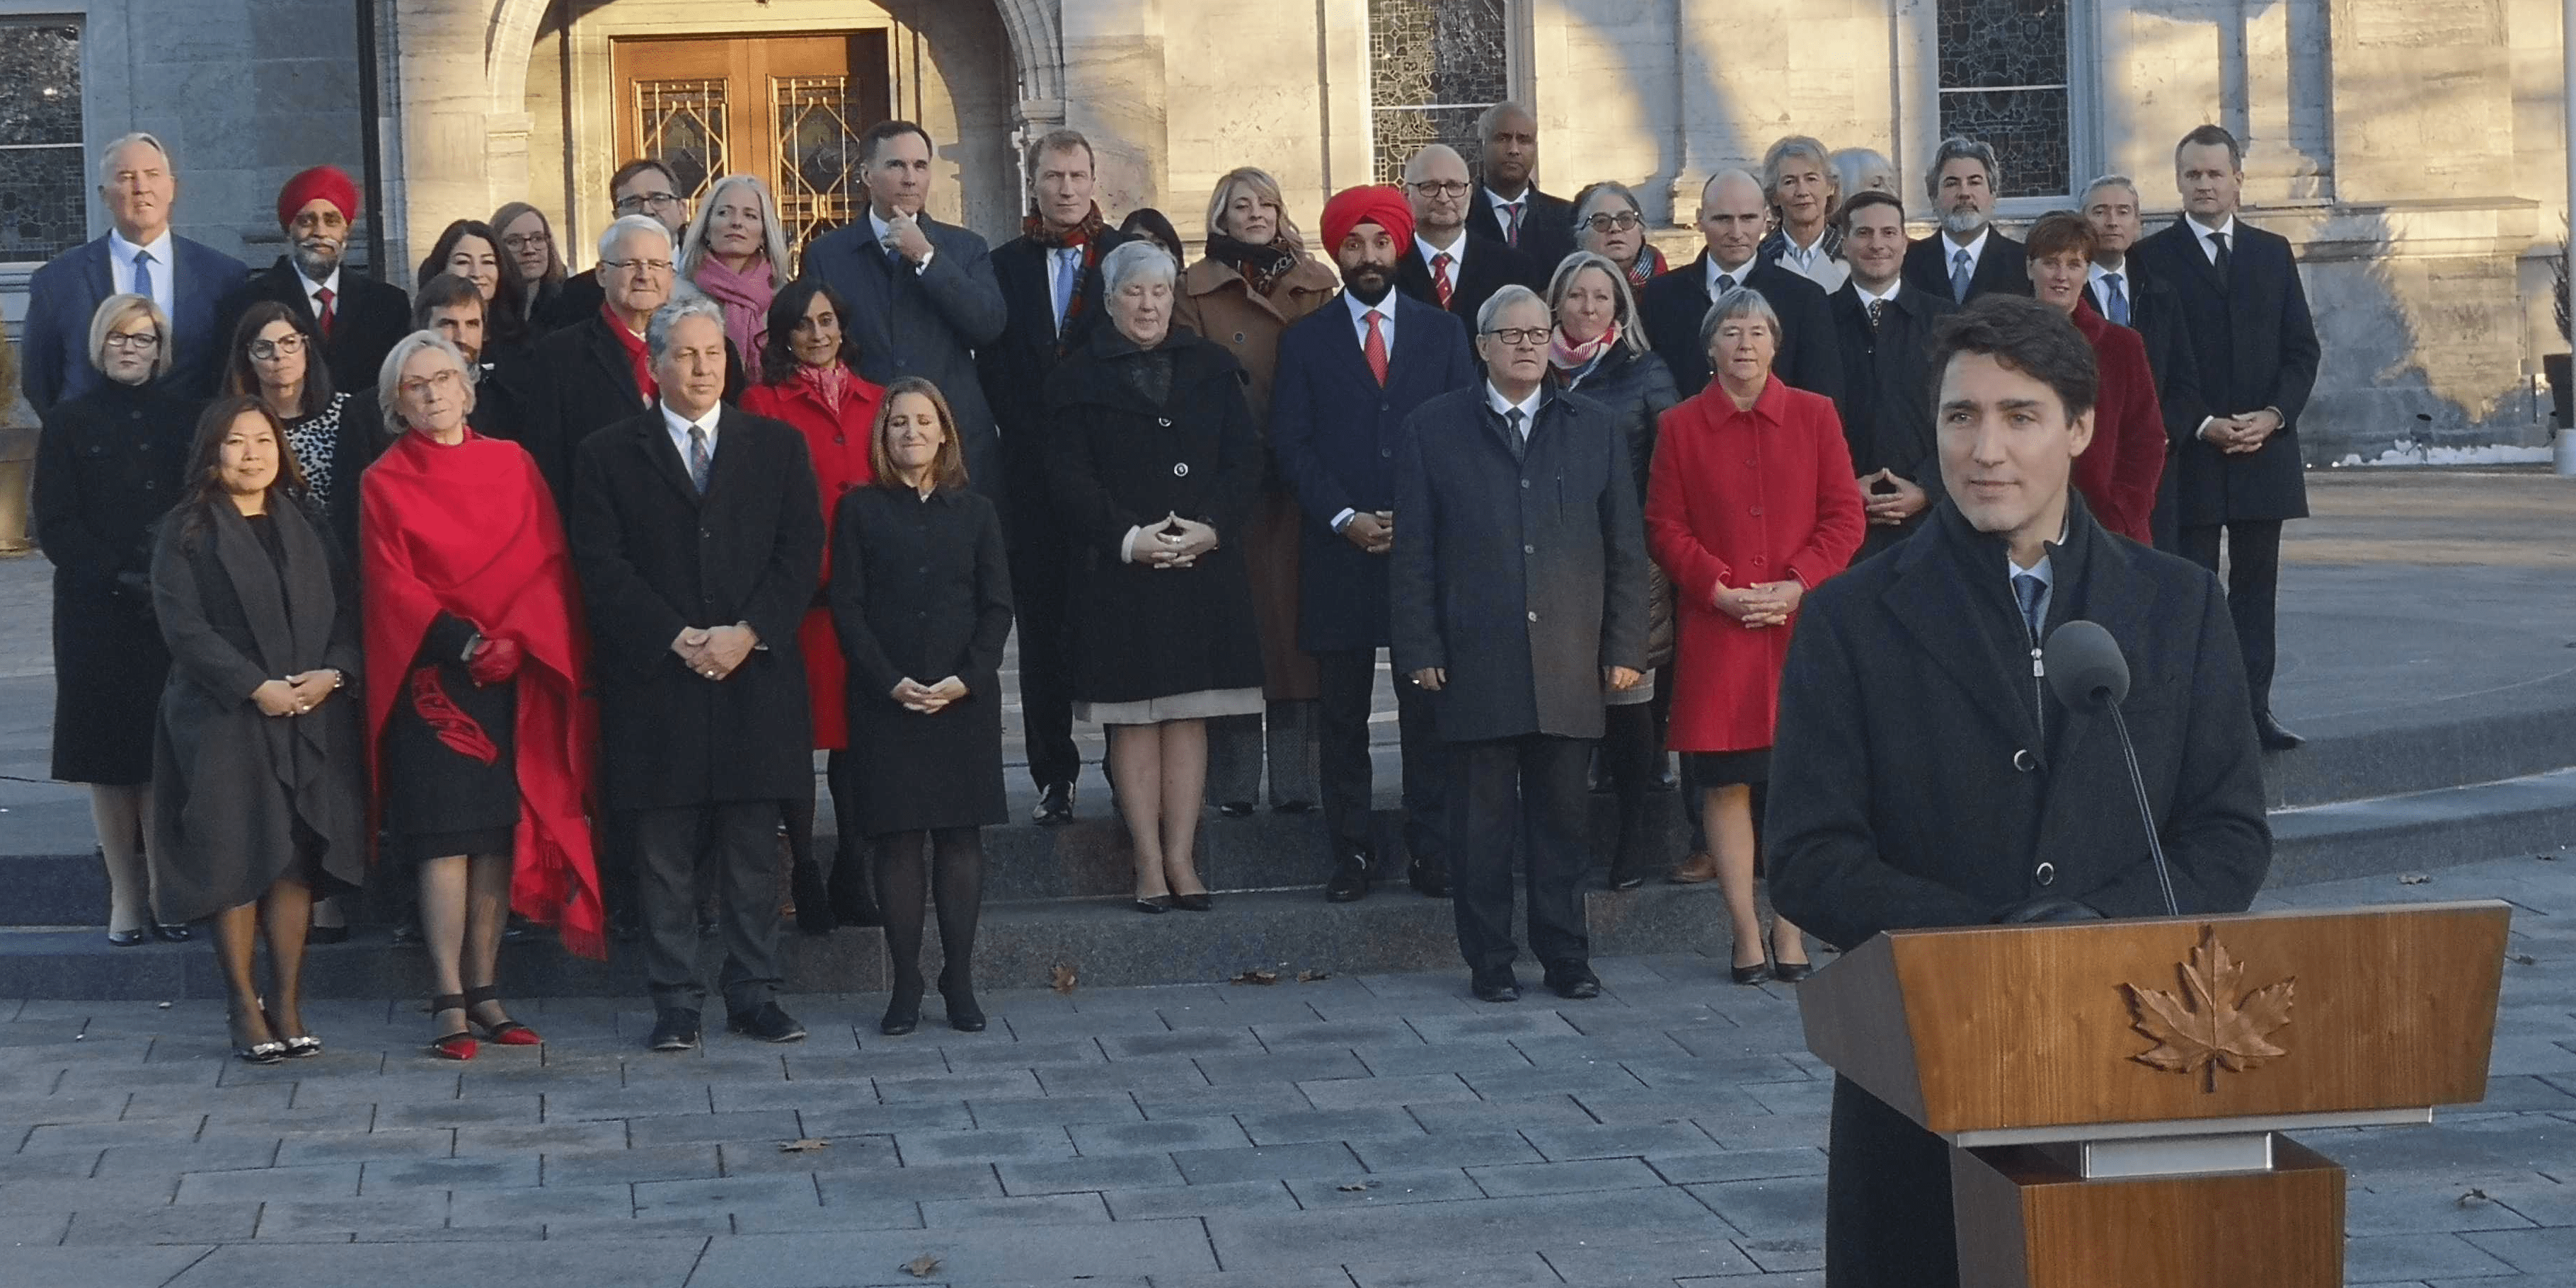 A complete list of Trudeau's 2nd gender-balanced cabinet